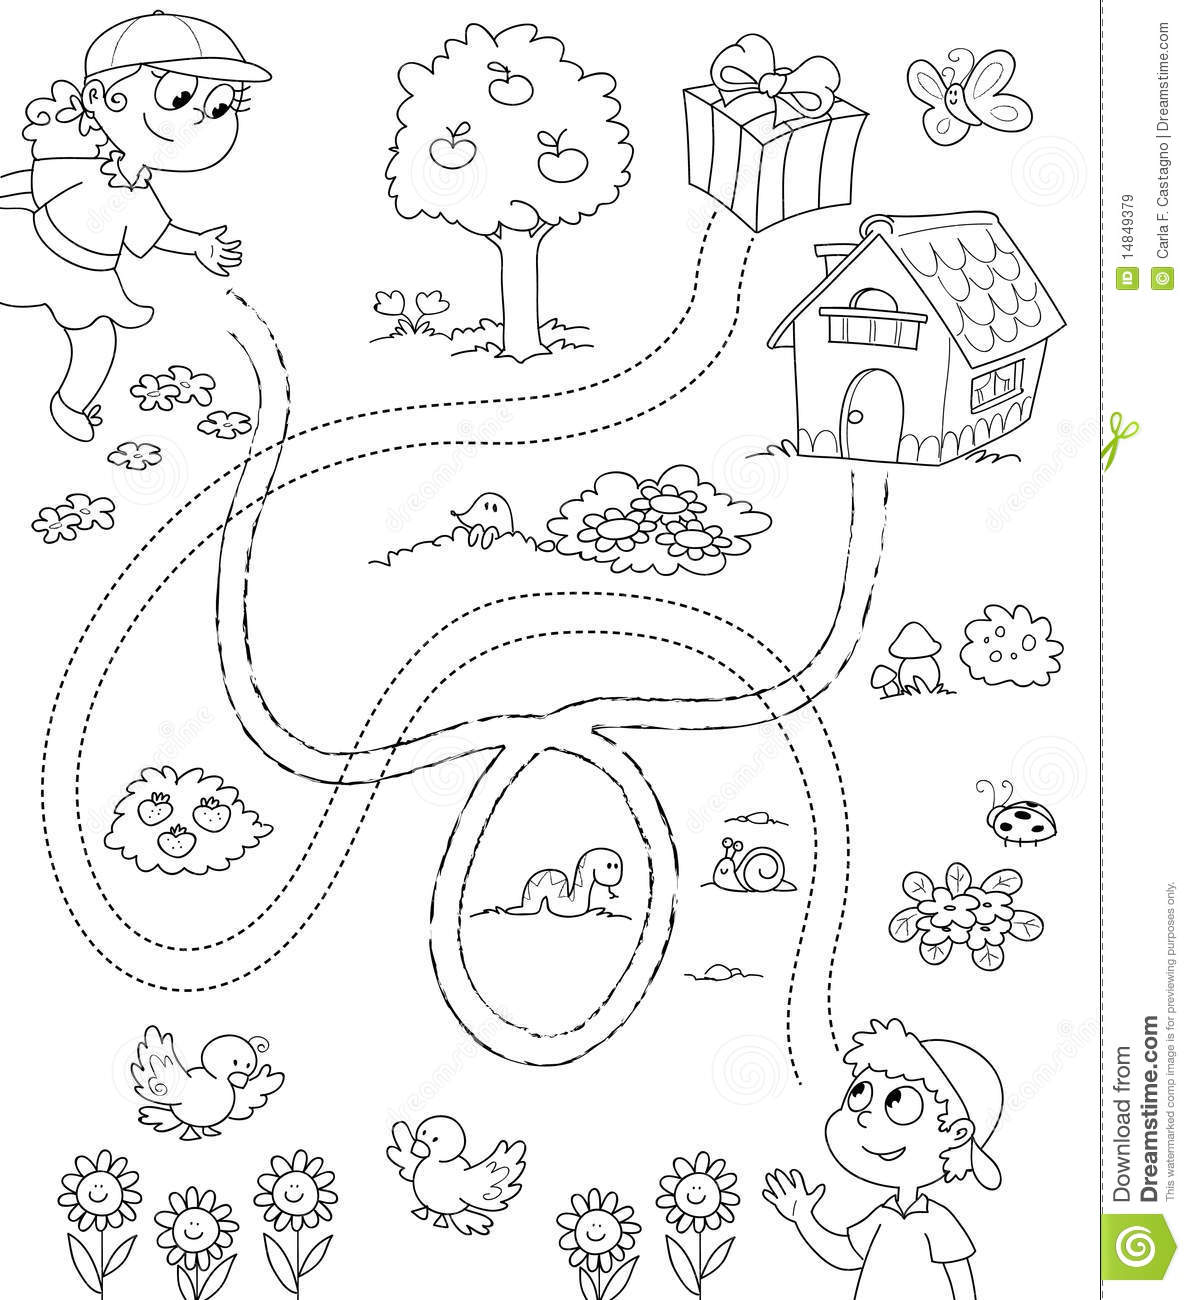 Coloring Game For Children